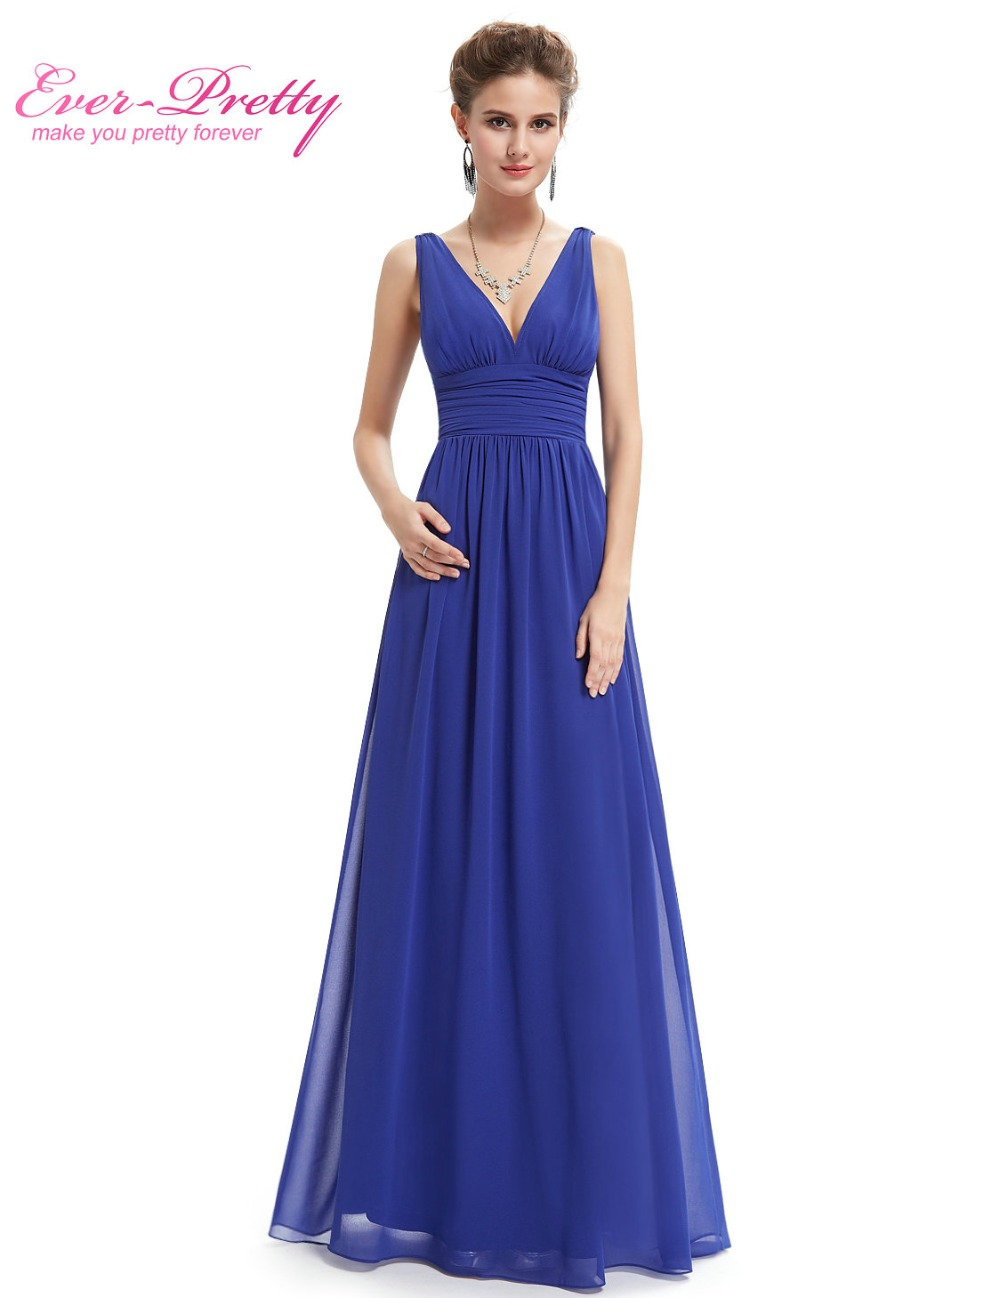 Prom dresses new arrival empire ep09016 ever pretty special occasion dresses v neck elegant long prom